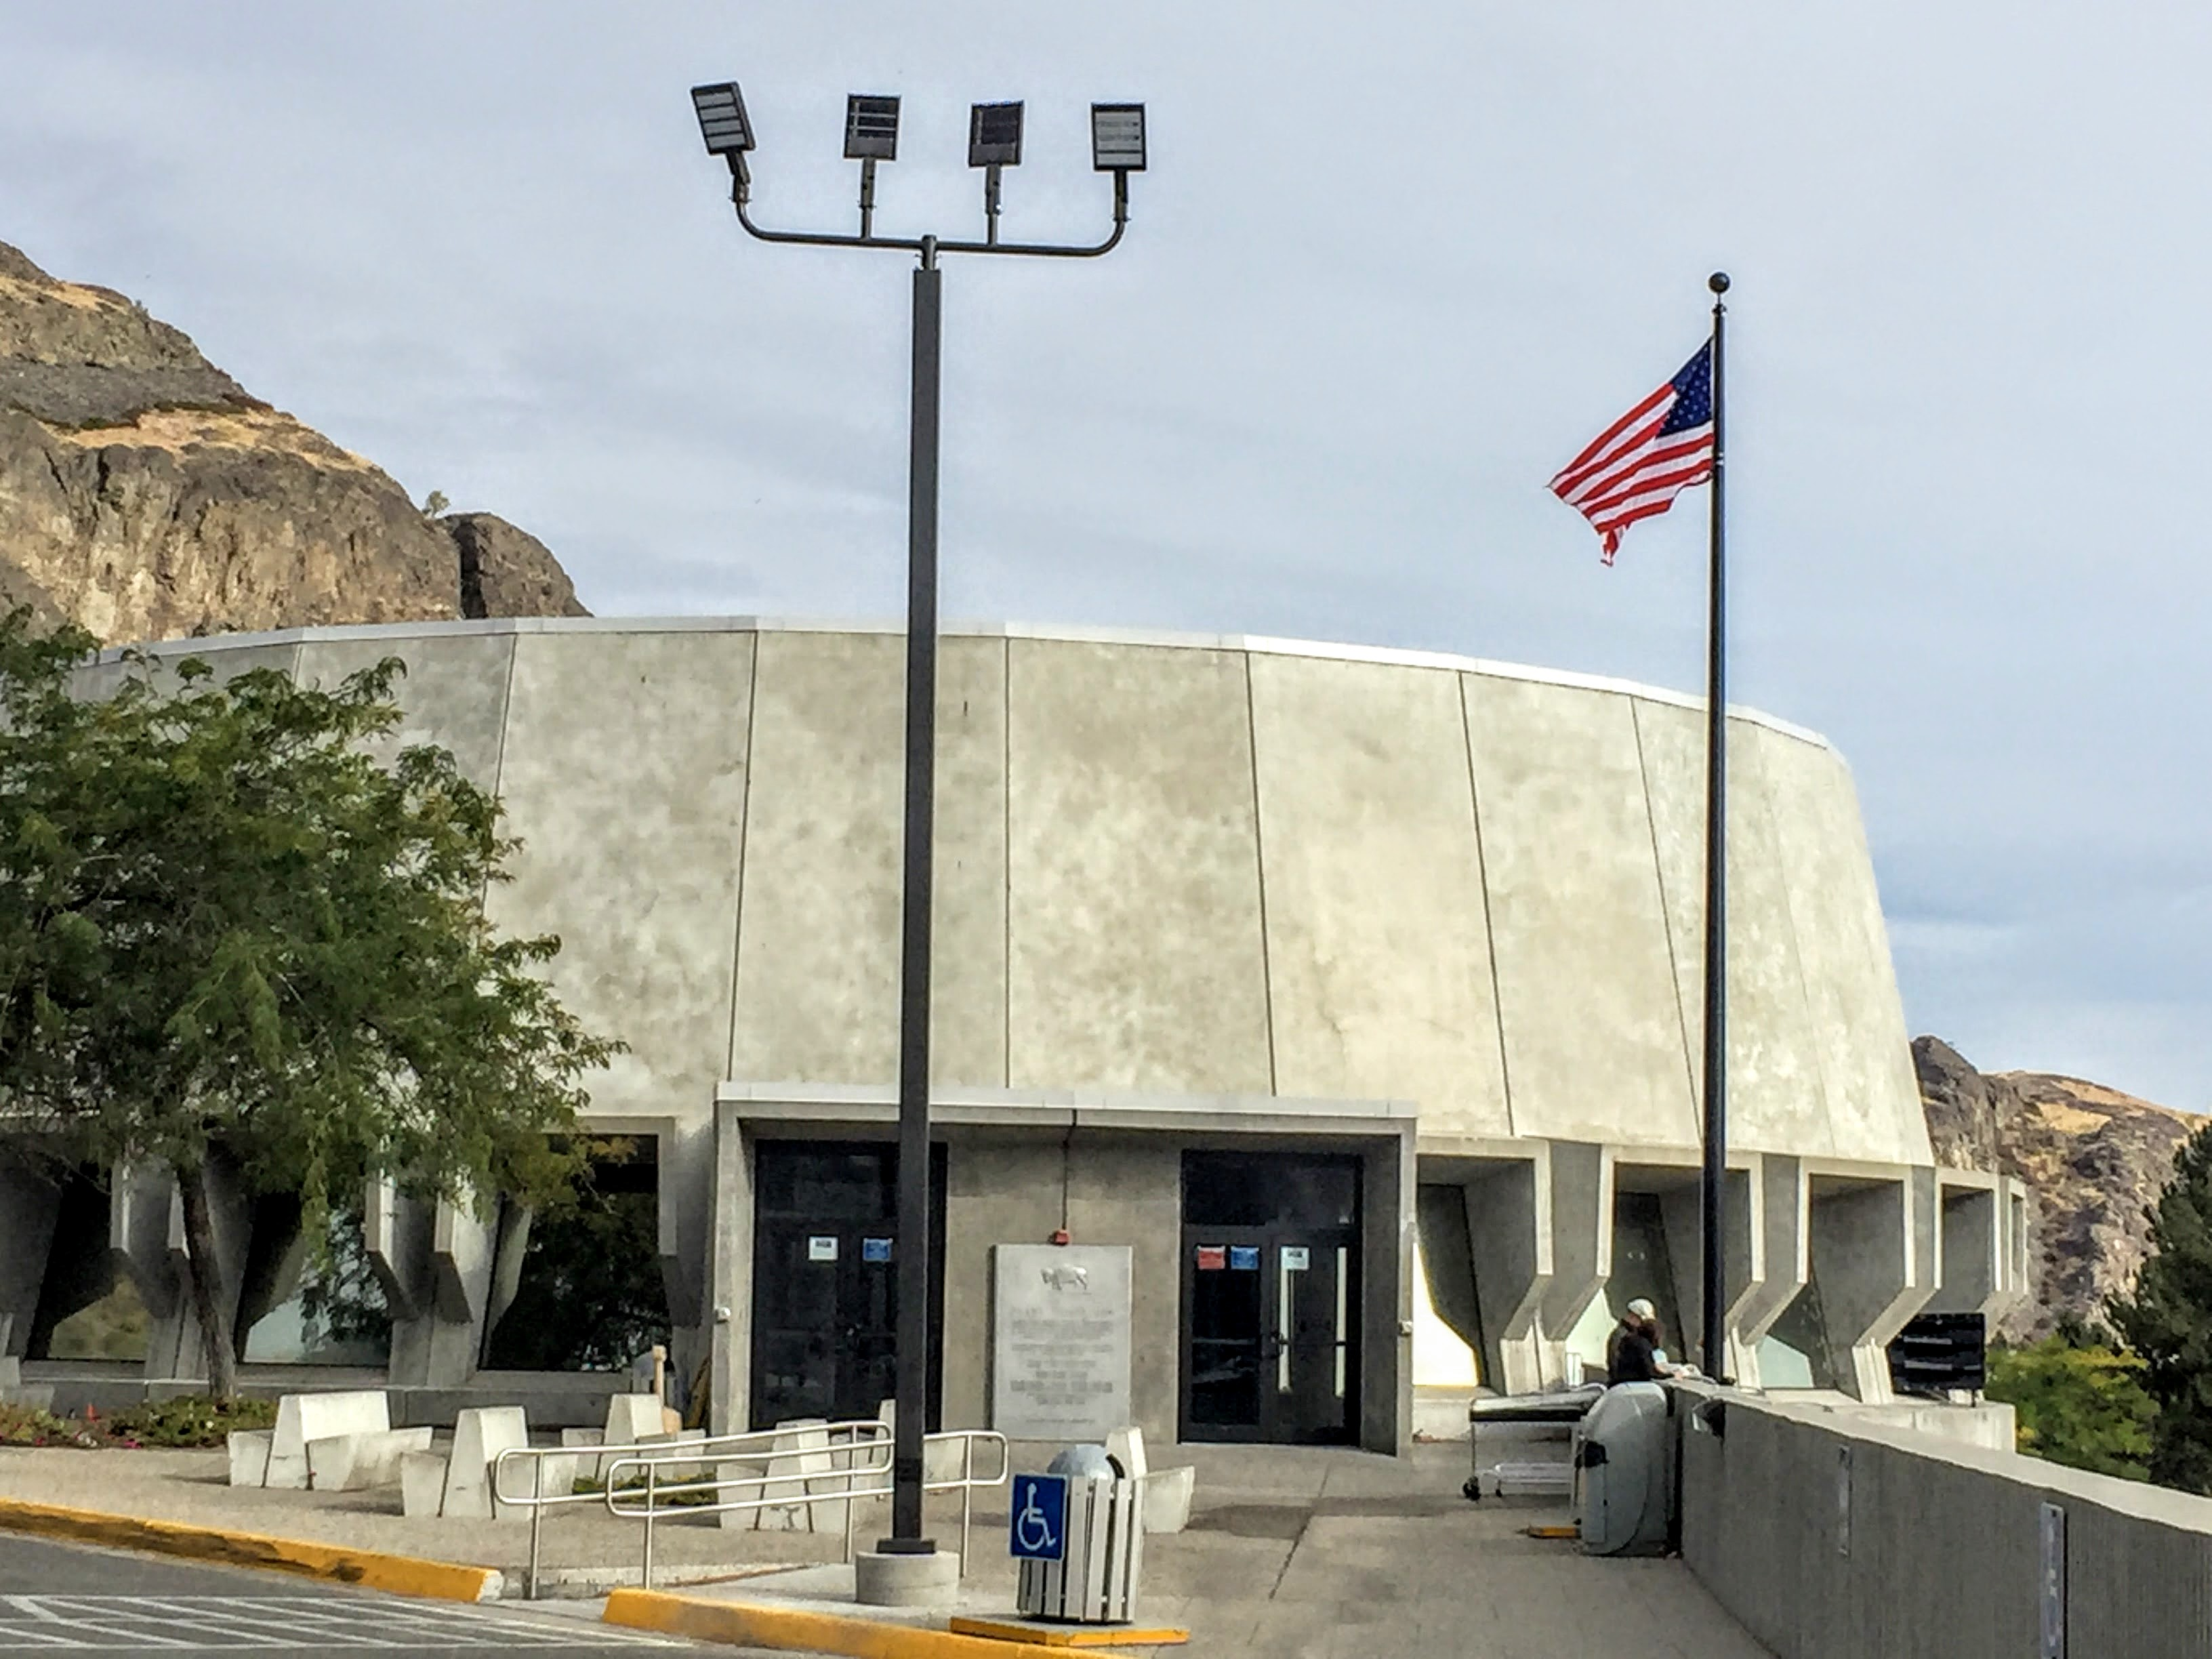 2017-09-23 Grand Coulee Dam 01 Visitors Center